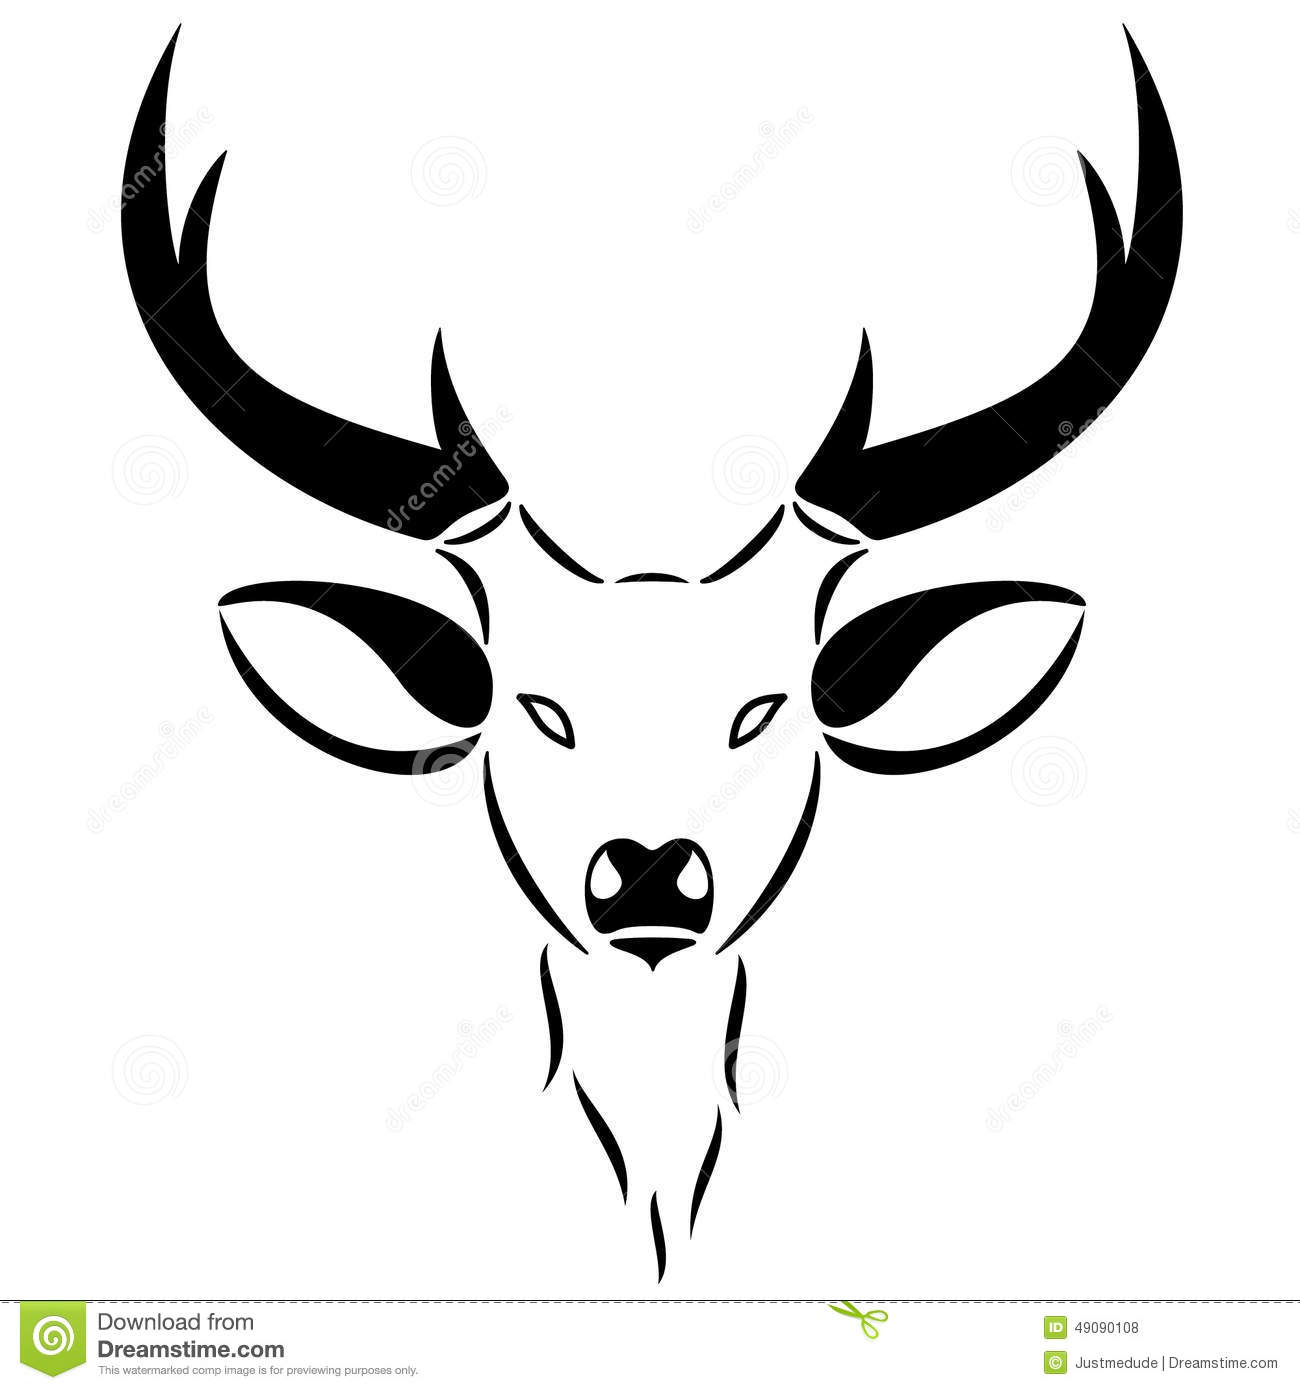 Head Of A Male Deer Ideal As An Emblem Or Logo For Related Businesses